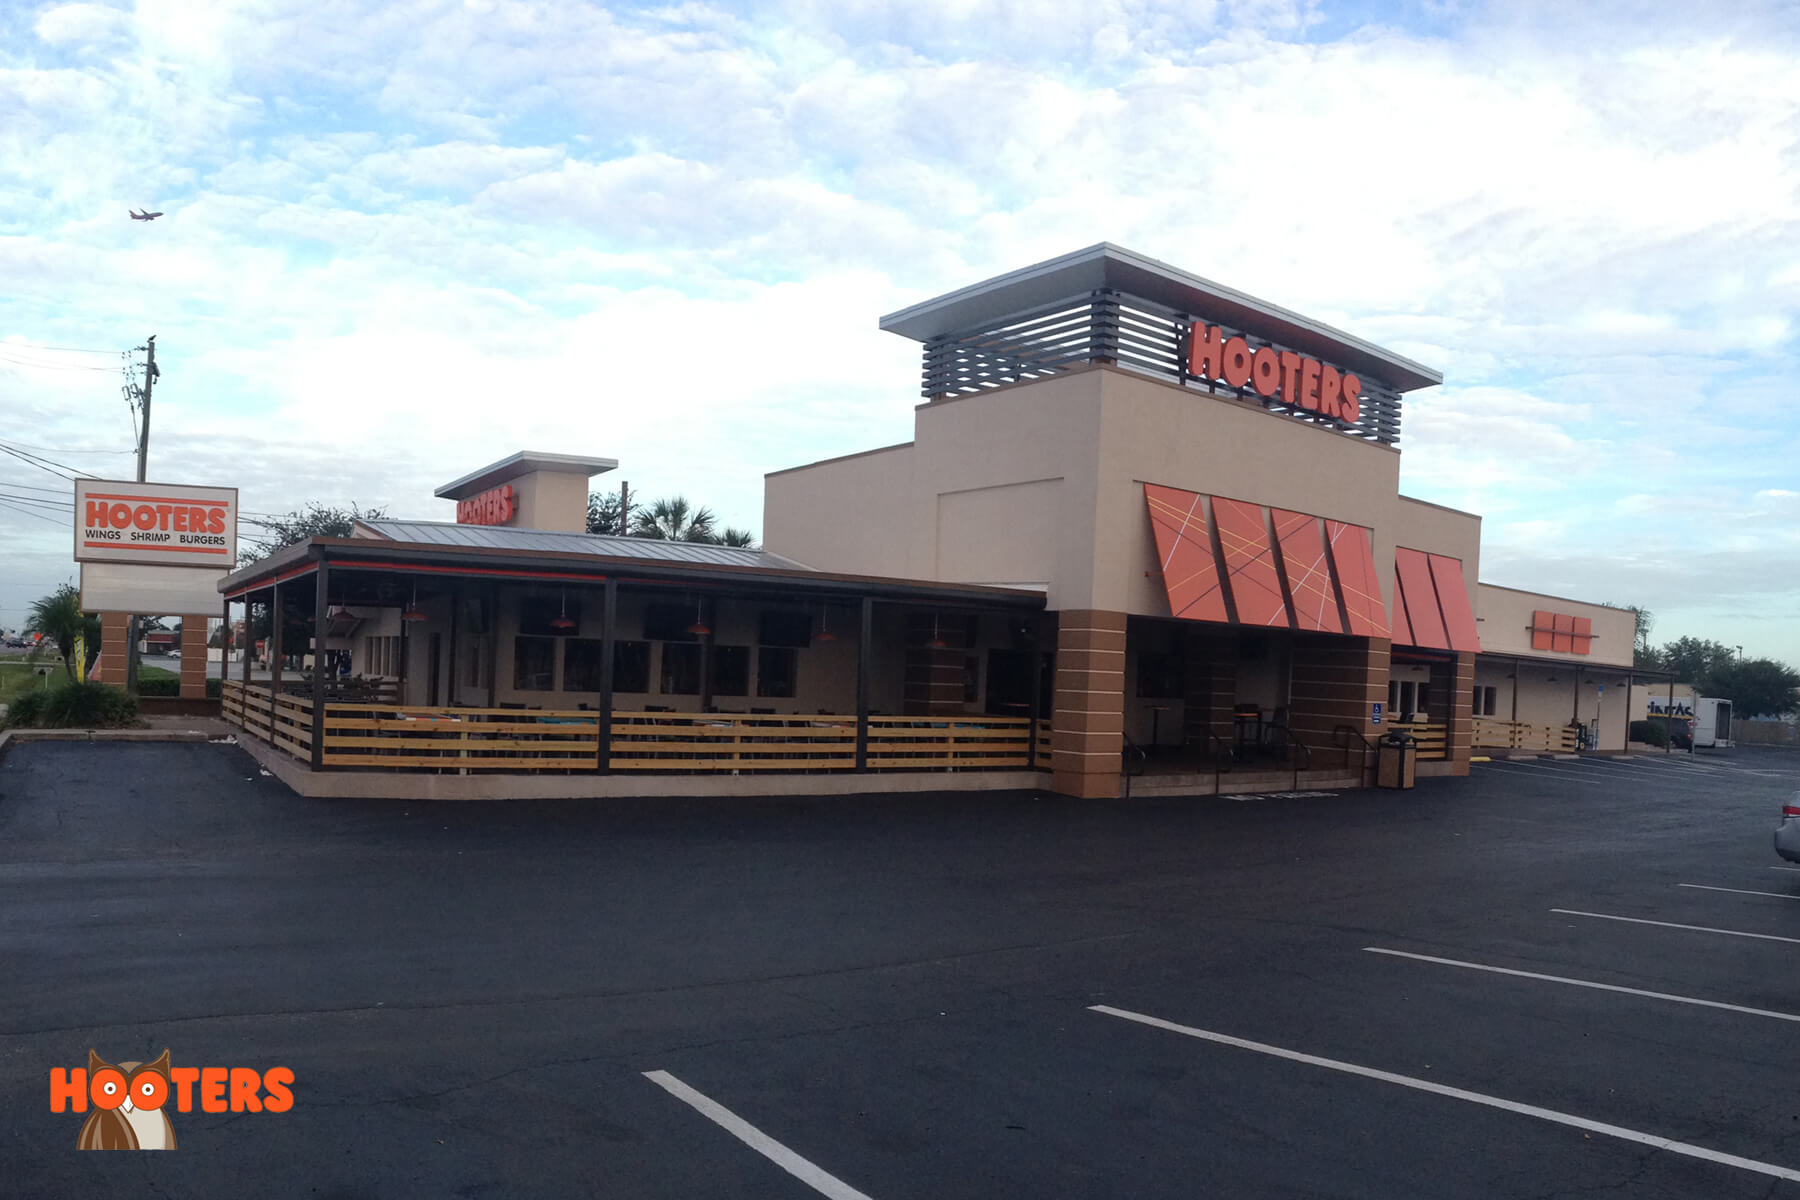 Hooters - Tampa, FL